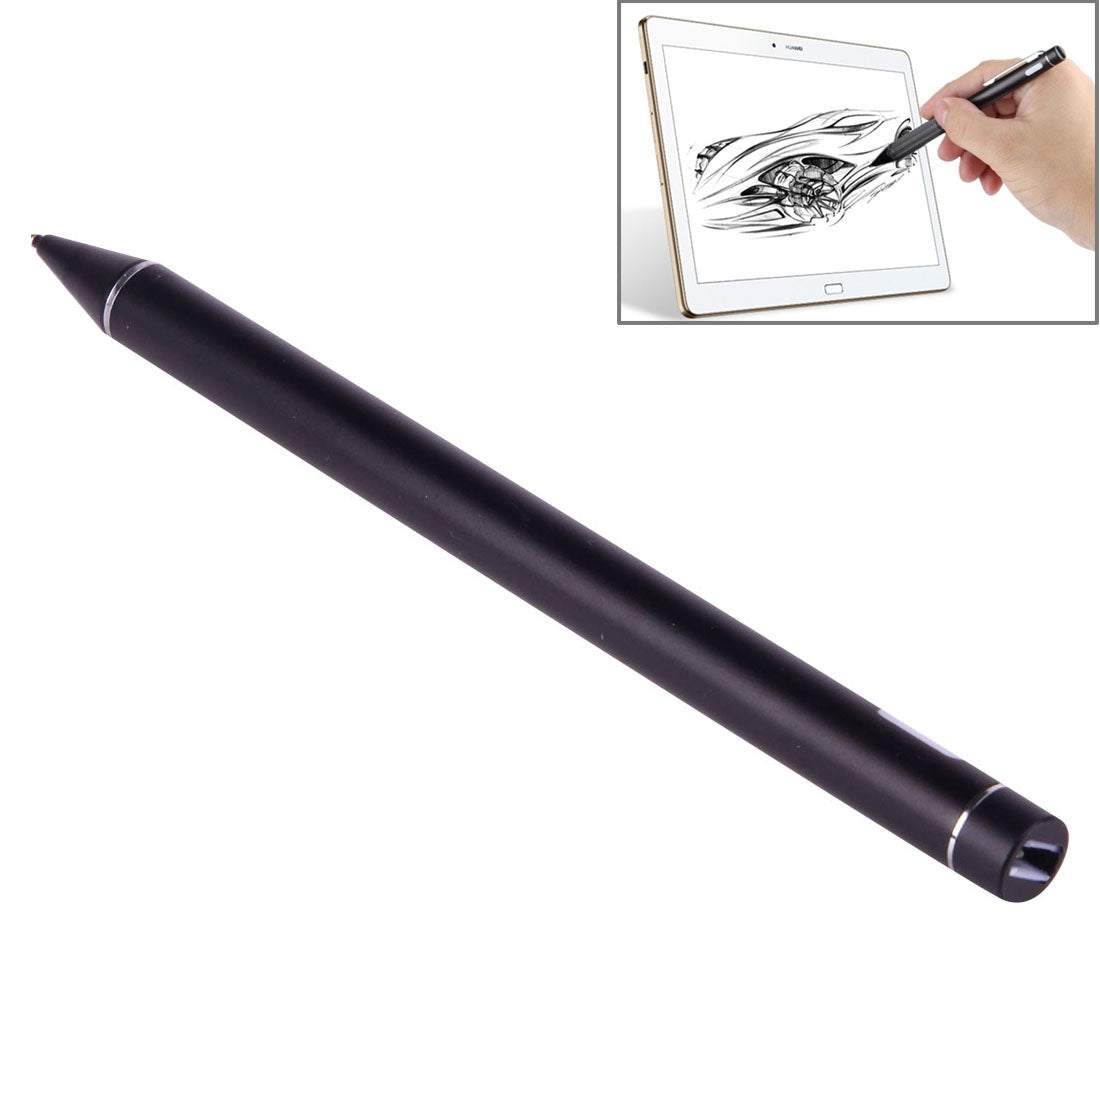 Universal Rechargeable Capacitive Touch Screen Stylus Pen with 2.3mm Superfine Metal Nib, For iPhone, iPad, Samsung, and Other Capacitive Touch Screen Smartphones or Tablet PC(Black)